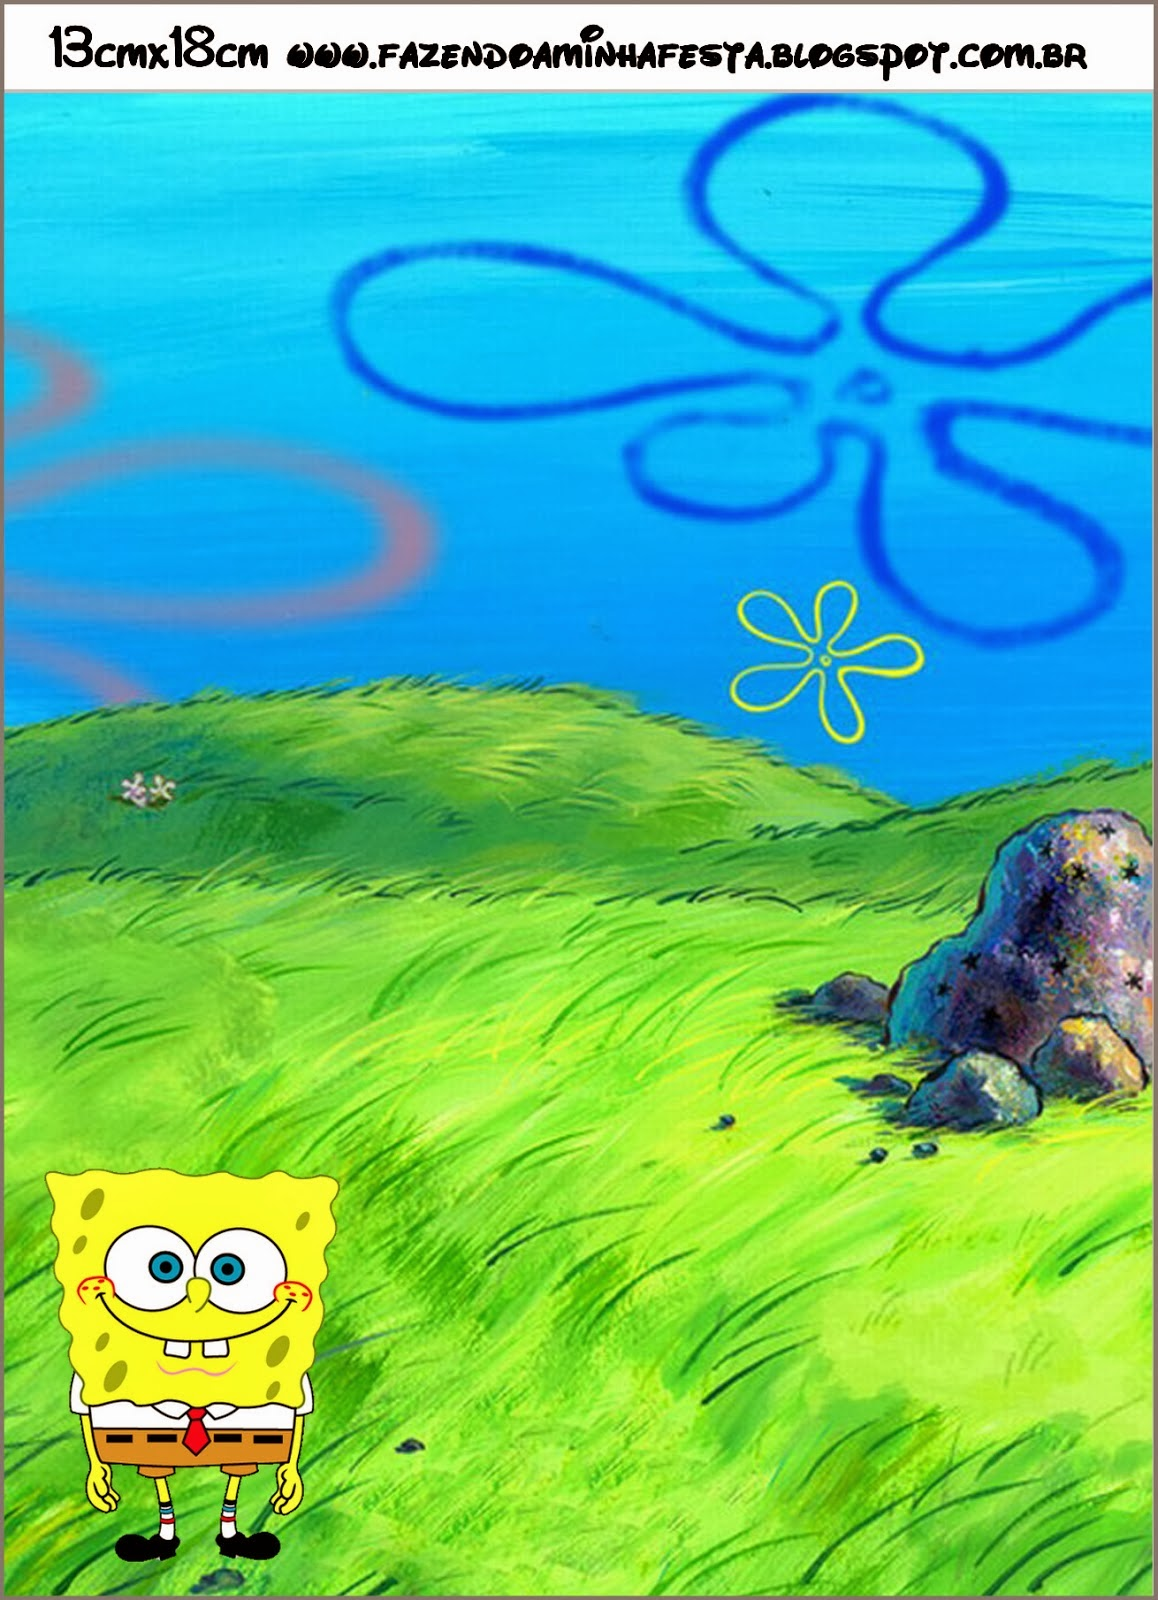 spongebob squarepants printable cards and invitations is spongebob squarepants printable cards and invitations